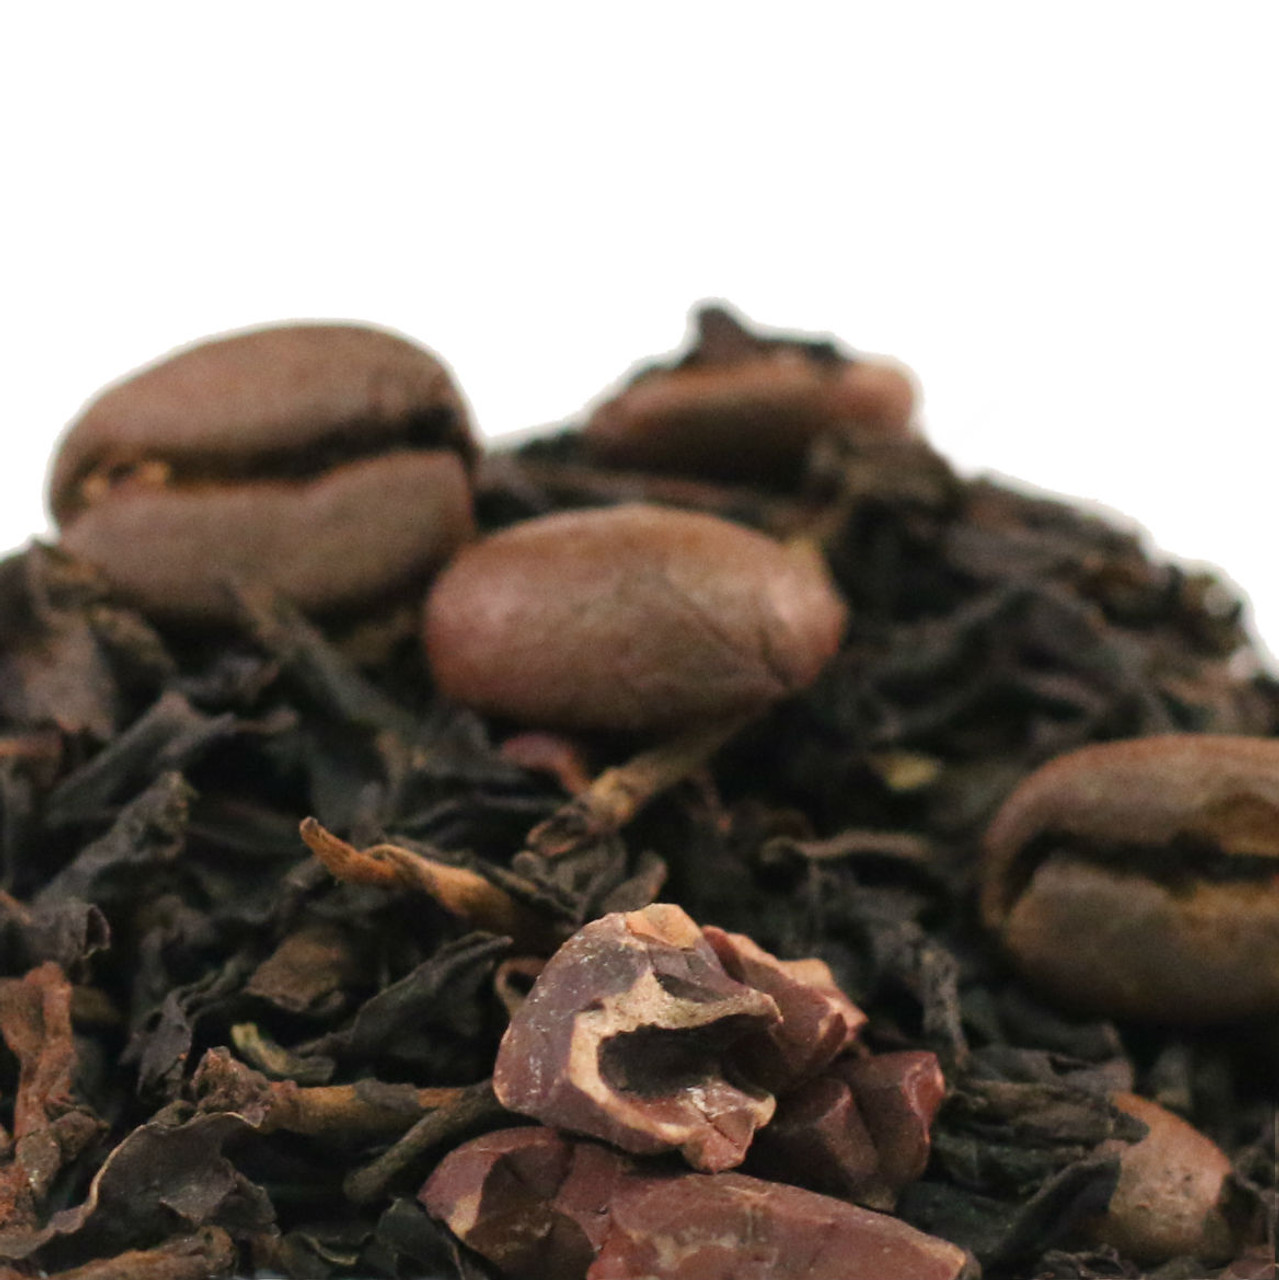 Our Caffè Mocha Black Tea is based on the traditional espresso-based drink with cocoa, but we have used a smooth high-quality black tea as the base and added cocoa and coffee bean pieces to round out this delicious tea.